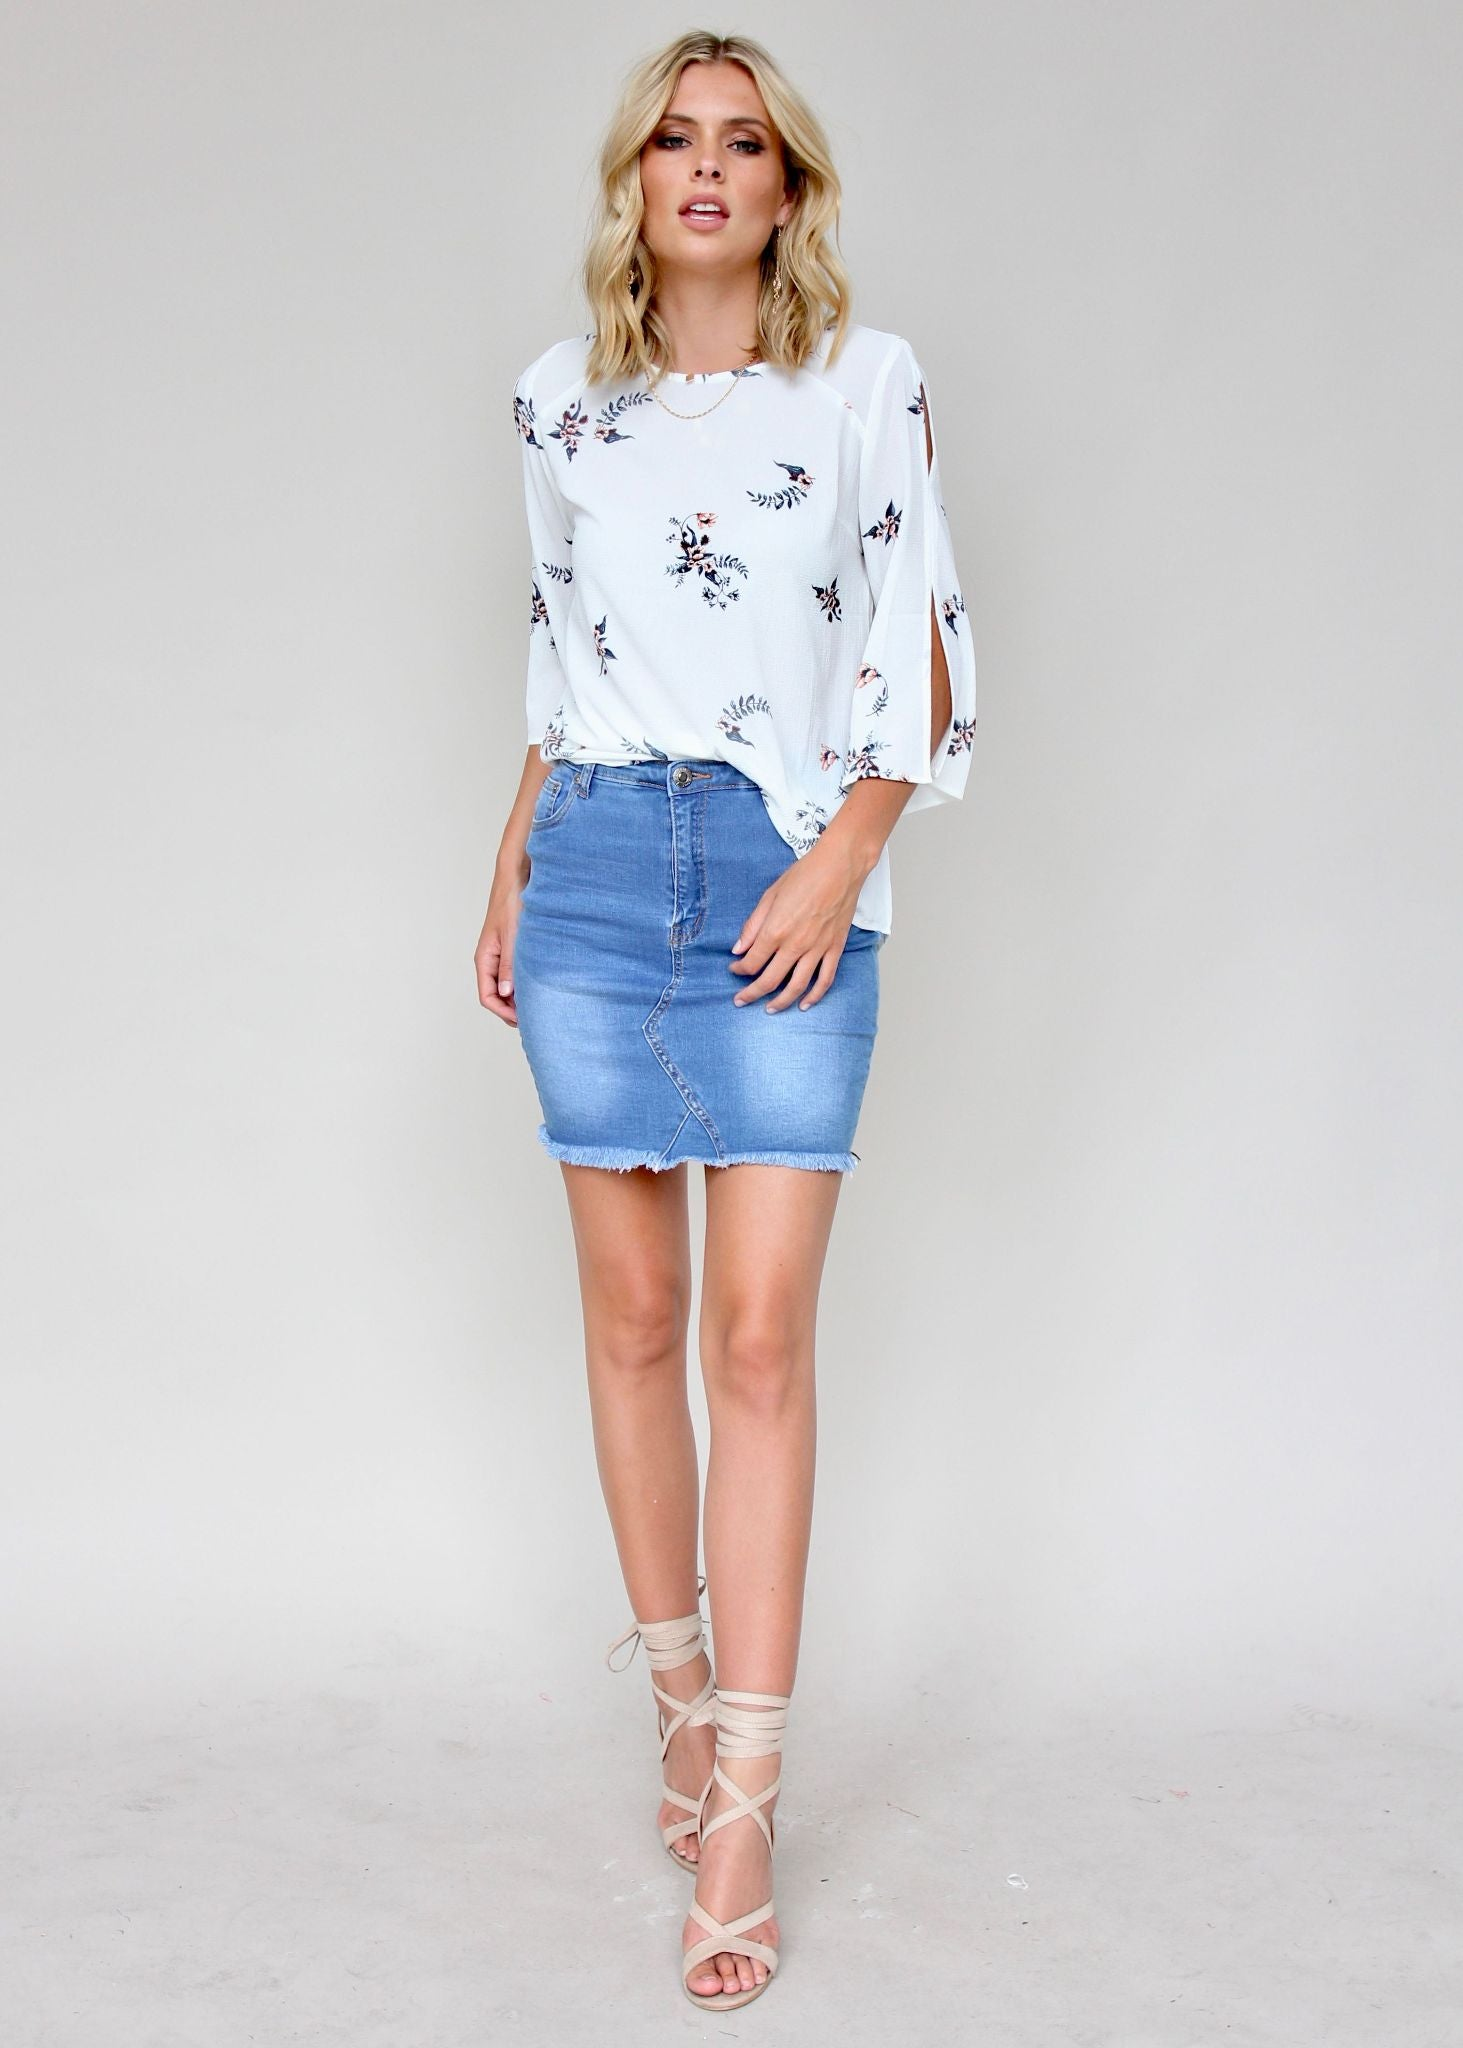 Catching Sun Blouse - White Leaf